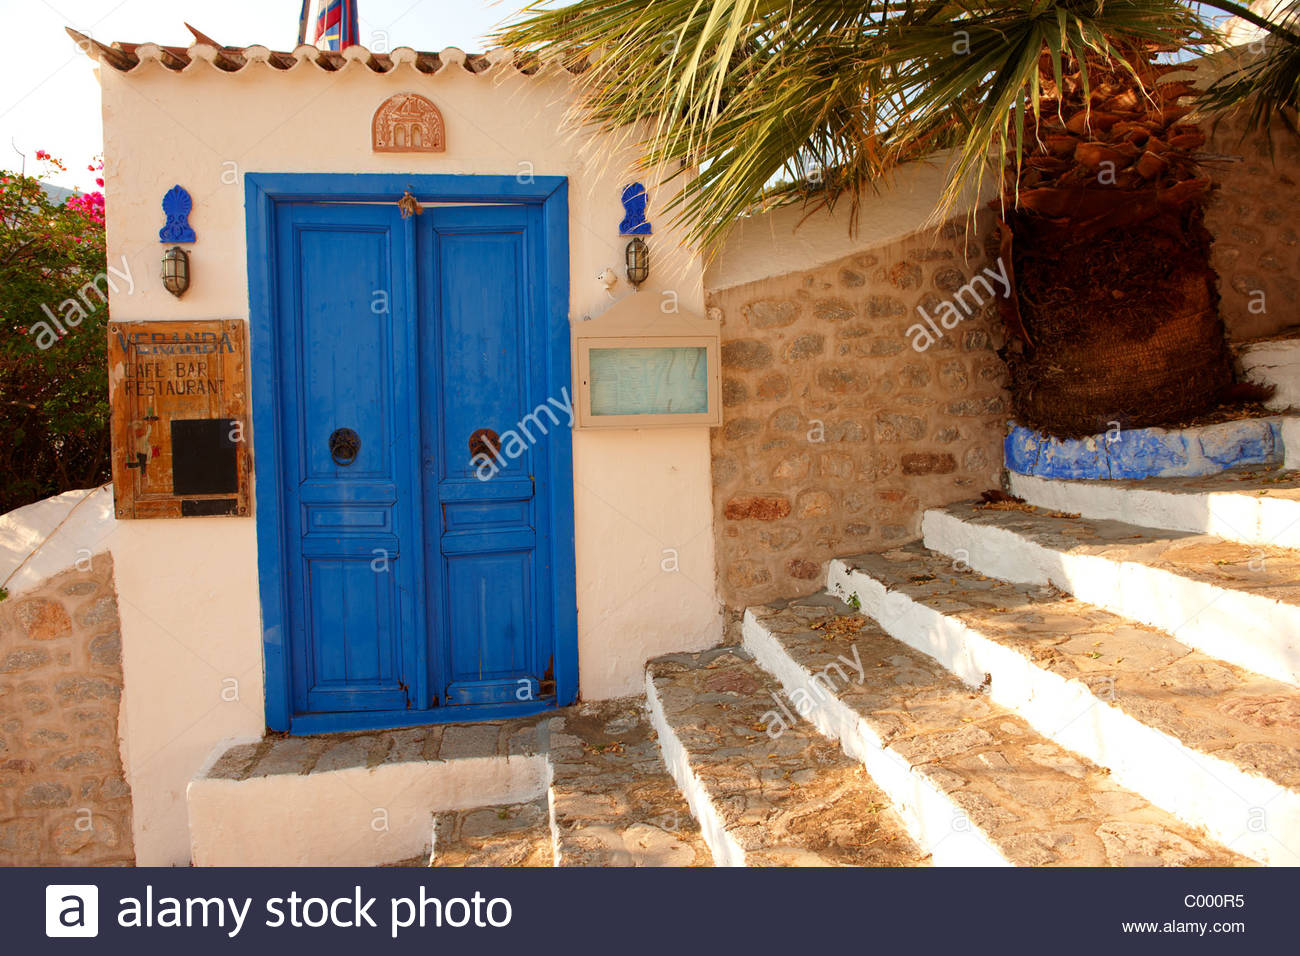 Veranda Restaurant entrance, Hydra, Greek Saronic Islands - Stock Image